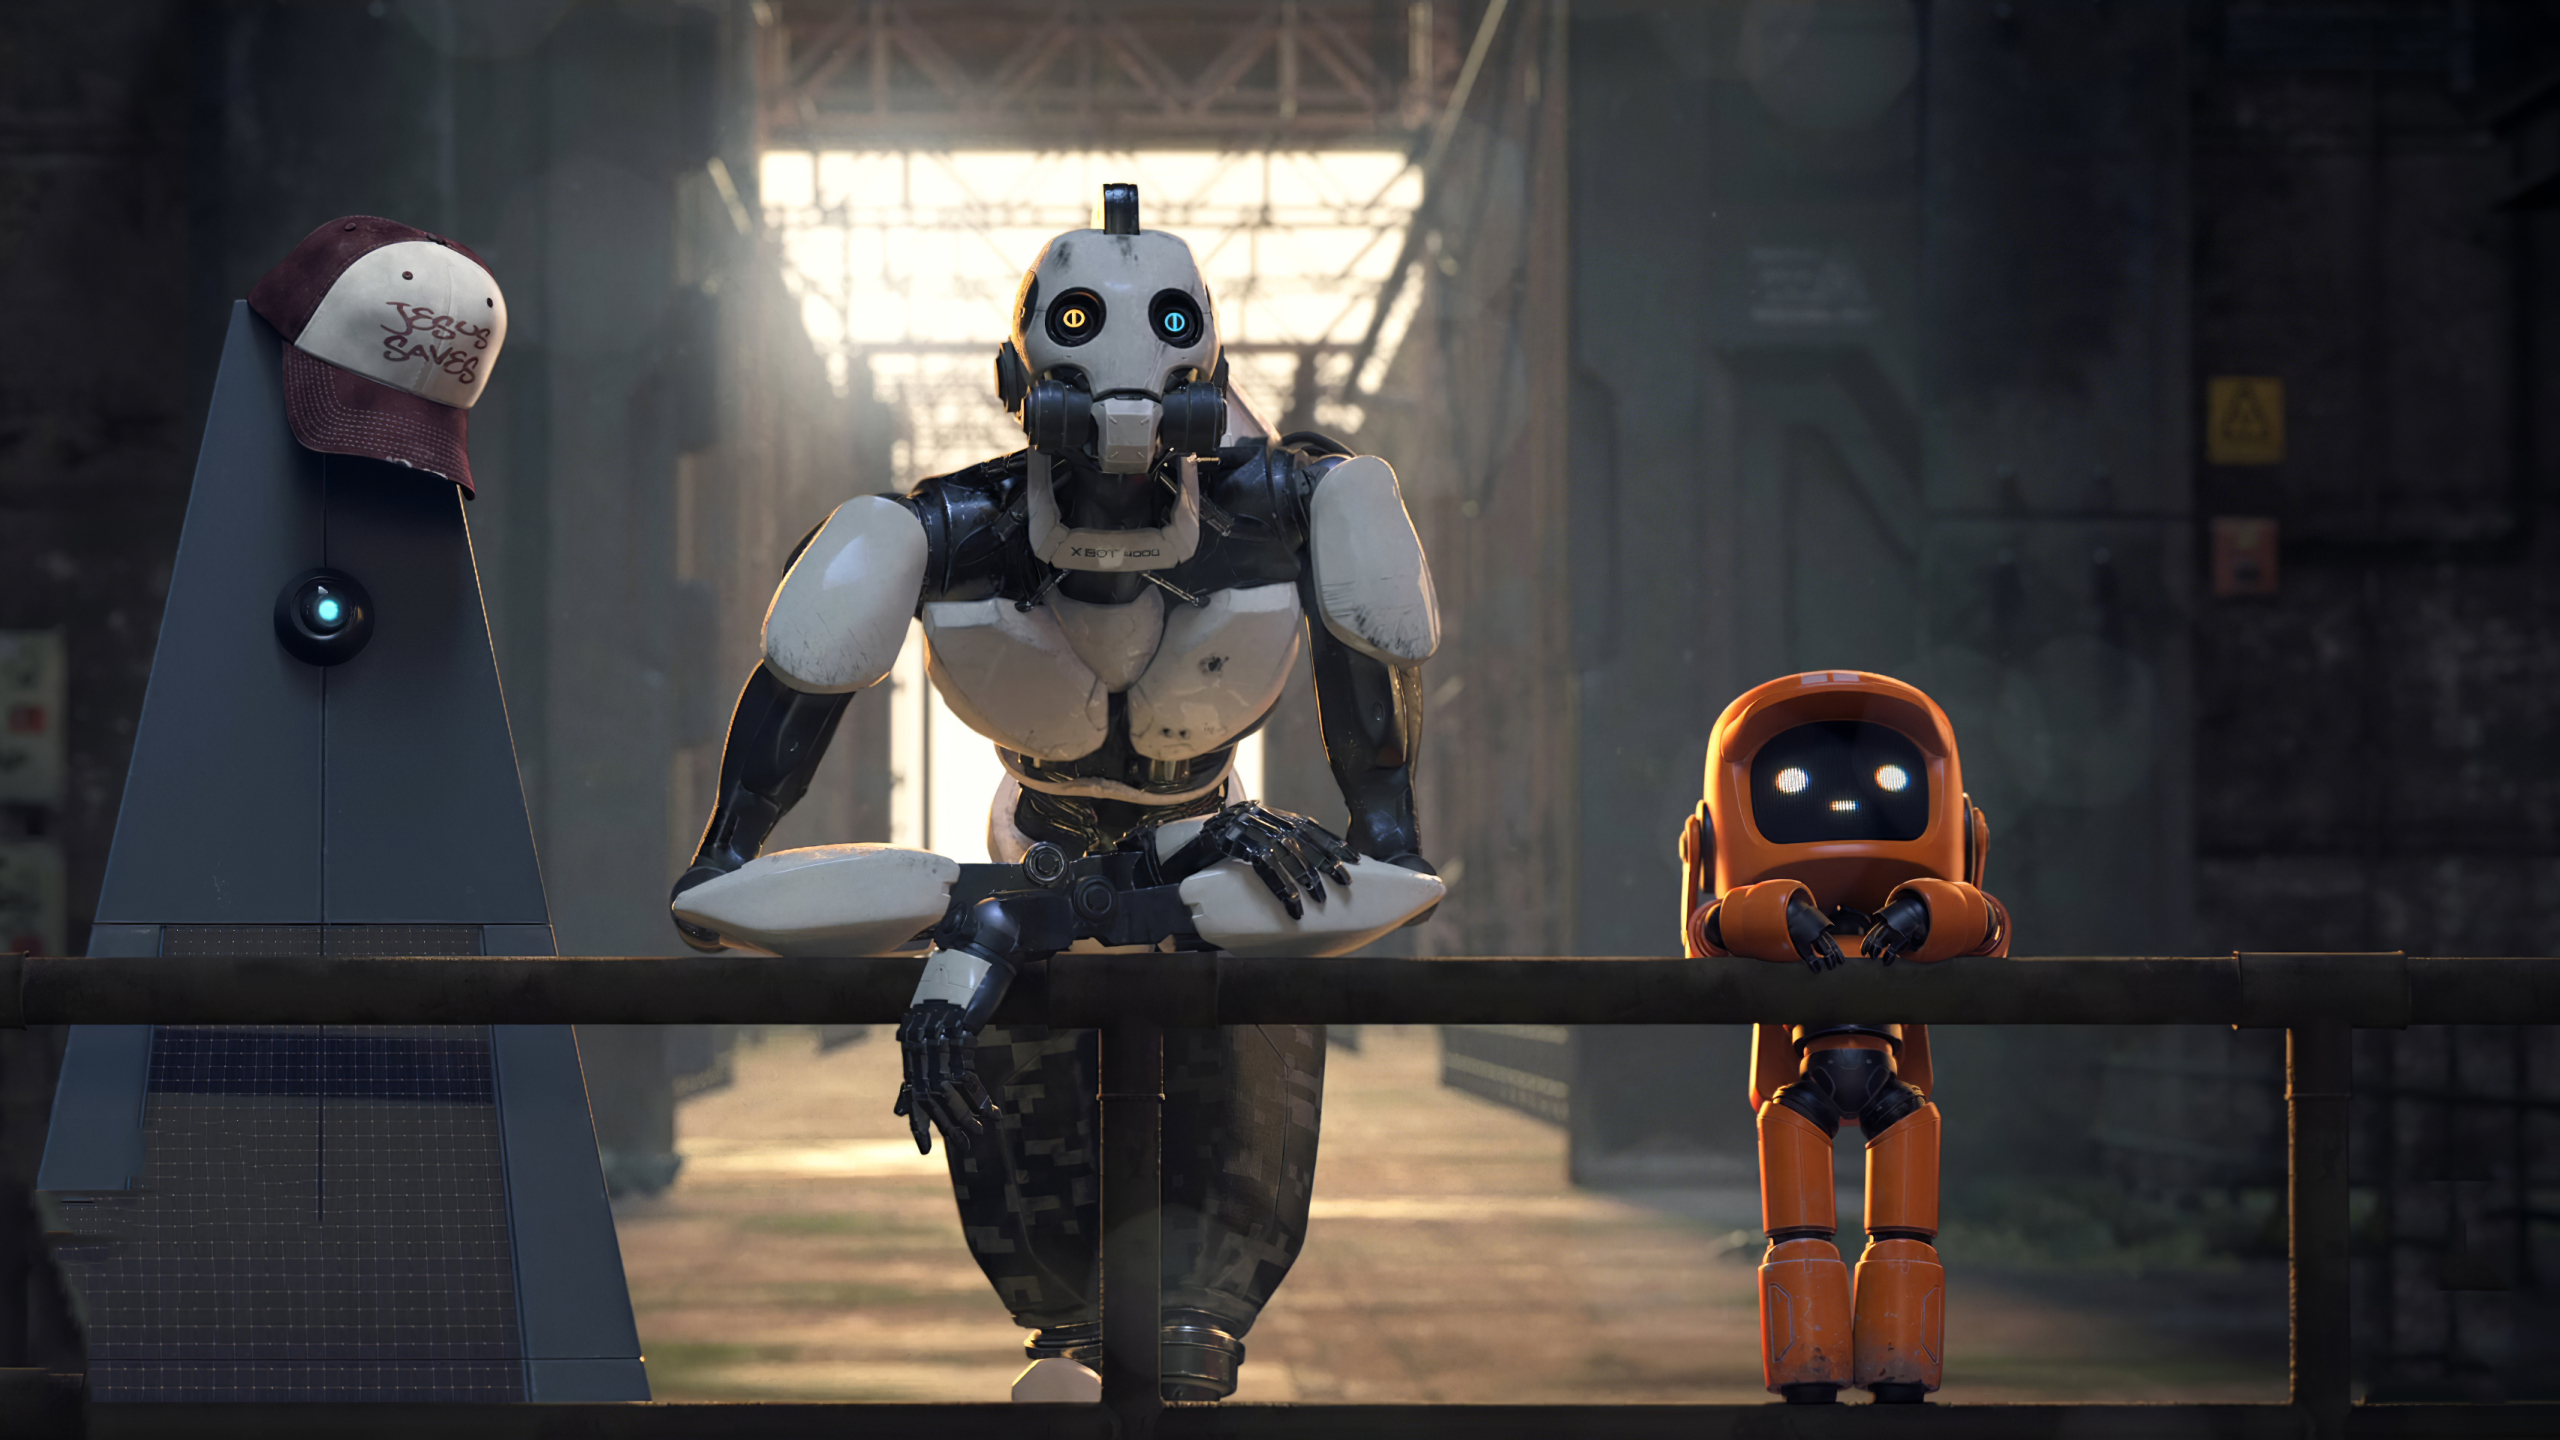 2560x1440 Love Death And Robots 1440P Resolution Wallpaper ...